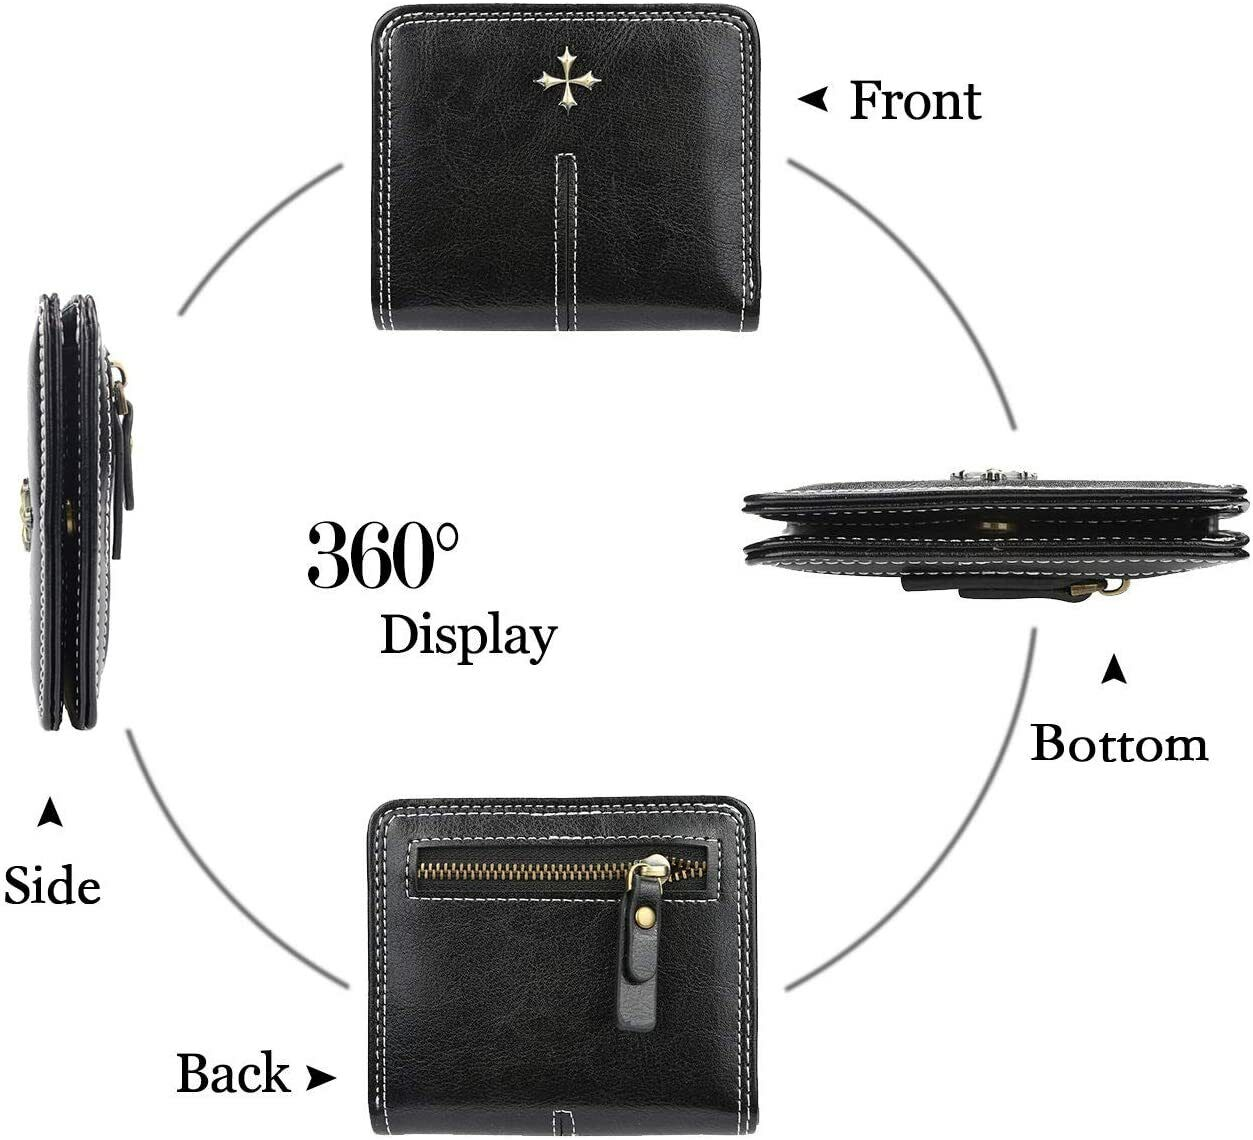 Small Wallet for Women Compact Bifold Leather Ladies Mini Purse with ID Window Clothing, Shoes & Accessories